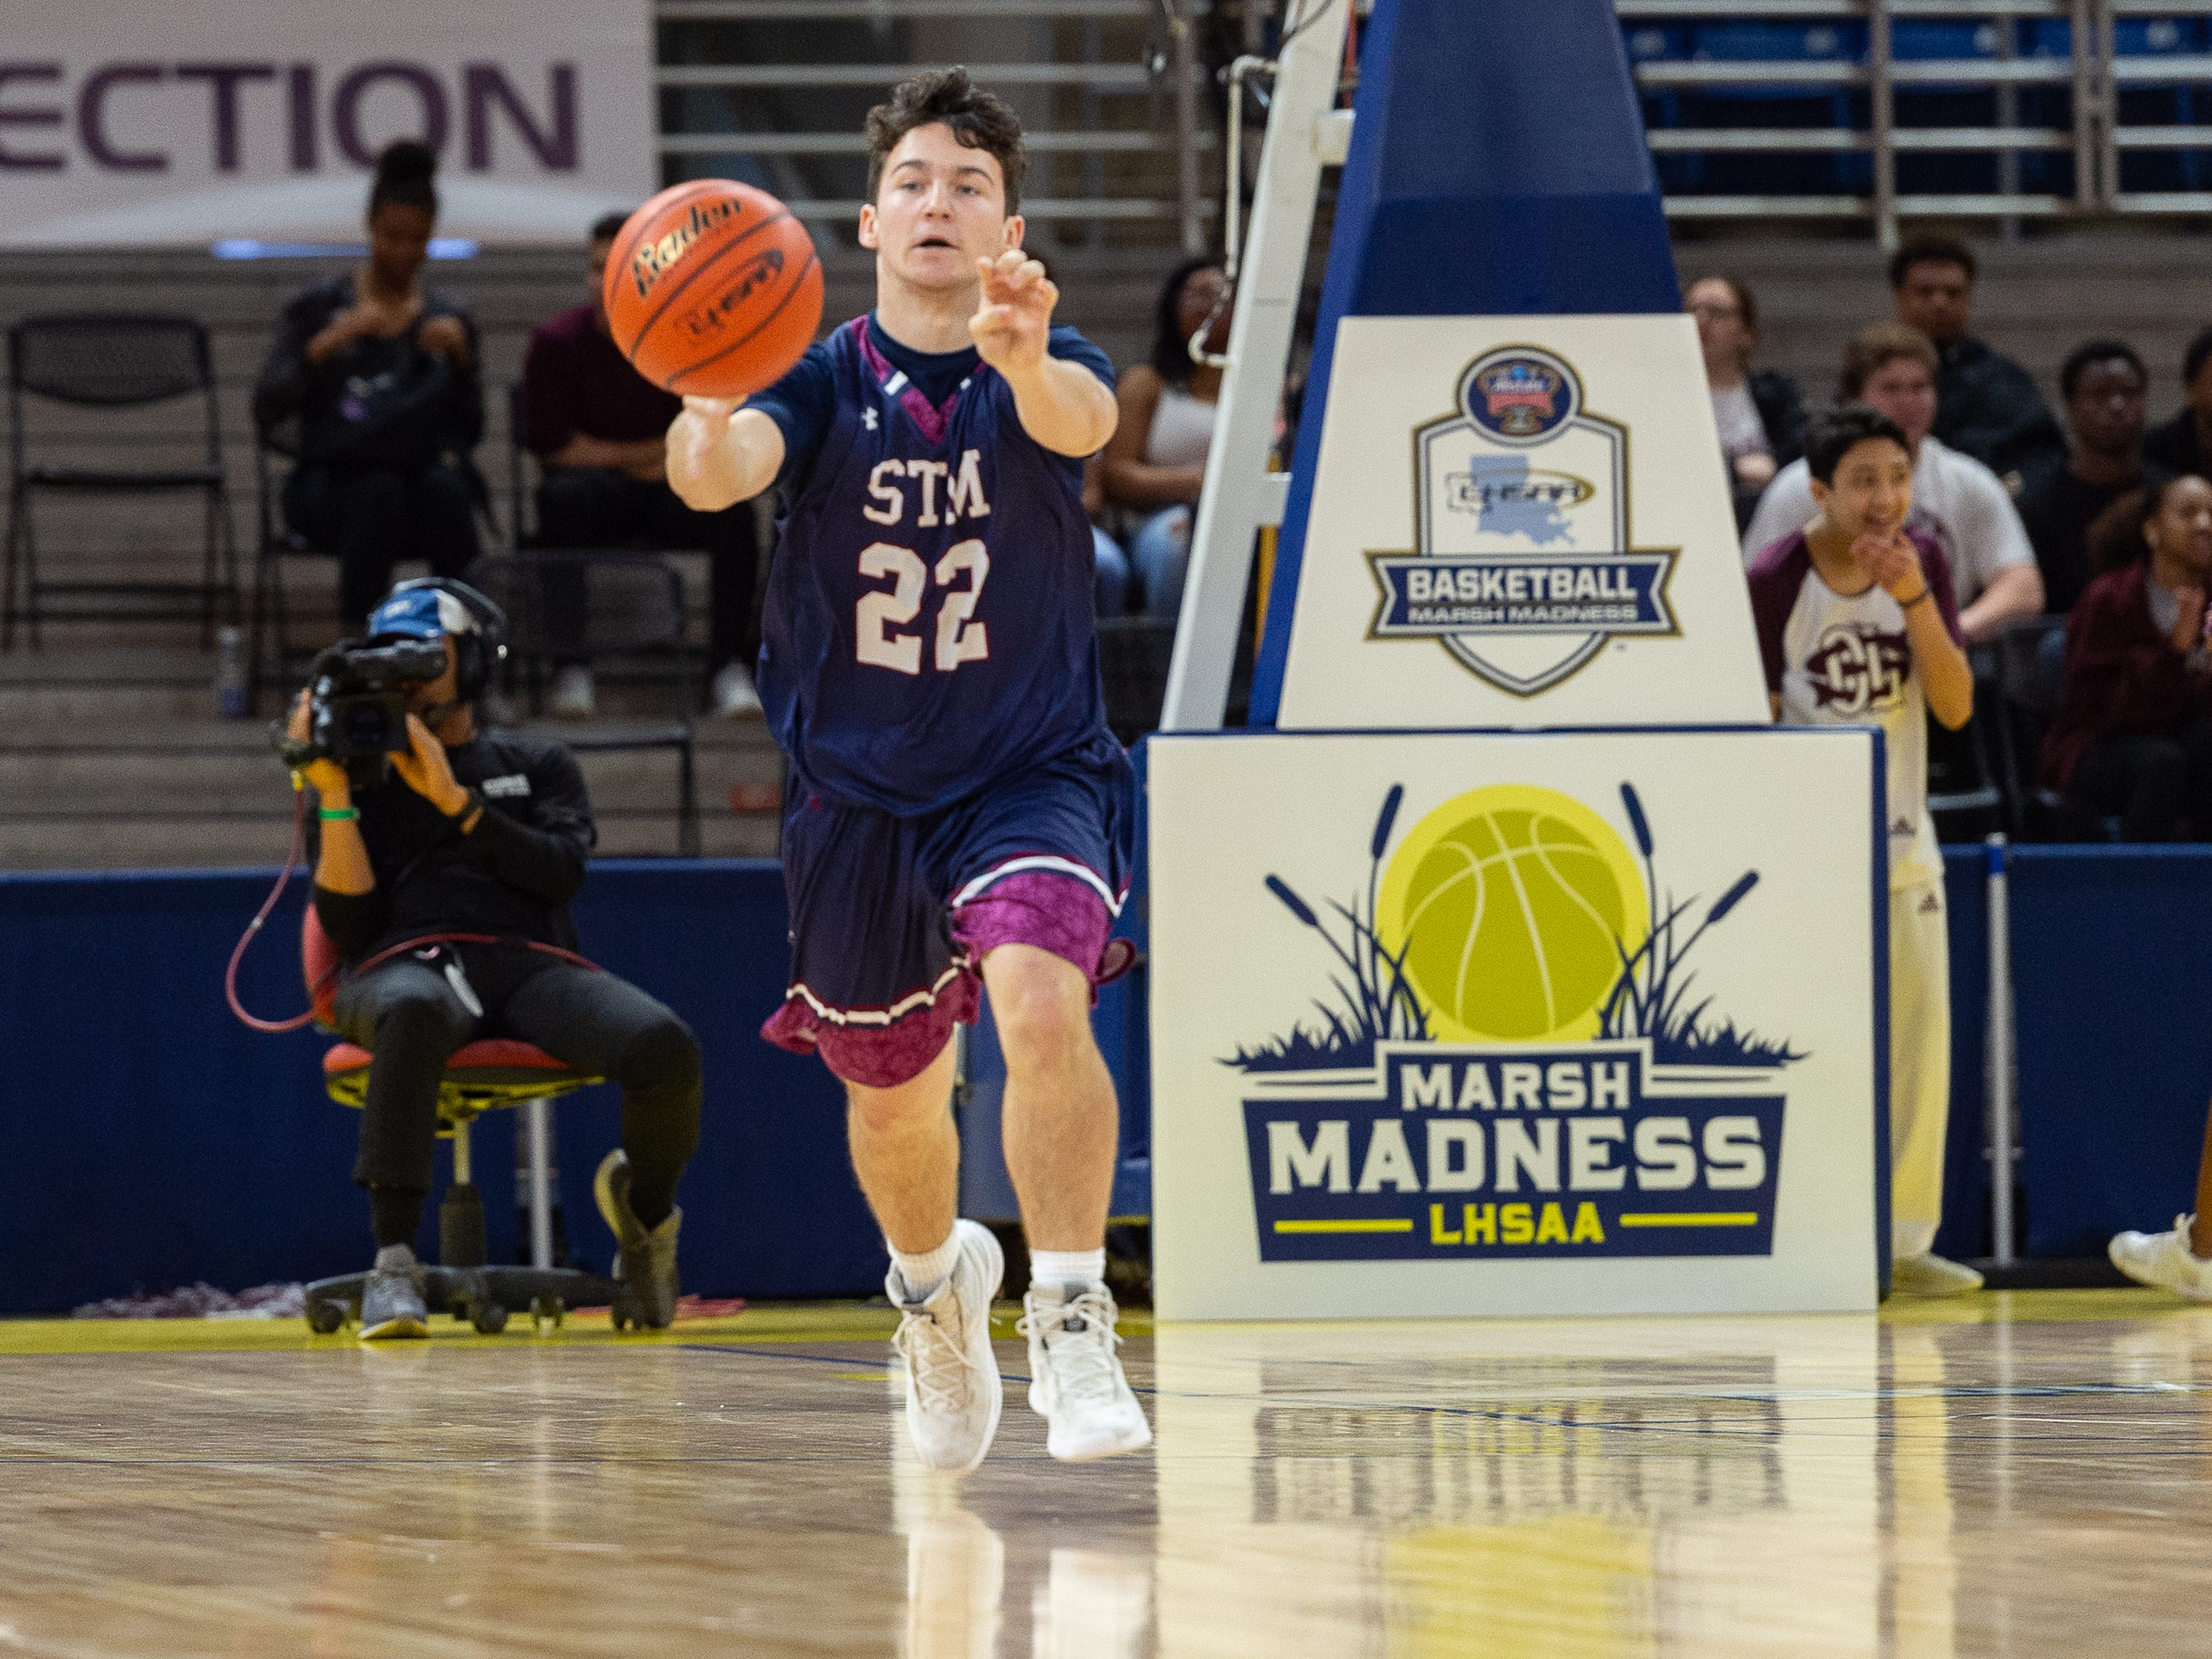 Tobin Thevenot passes the ball as The STM Cougars beat DeLaSalle in double overtime to win the Allstate Sugar Bowl/LHSAA Boys' Marsh Madness Div II State Championship. Saturday, March 9, 2019.